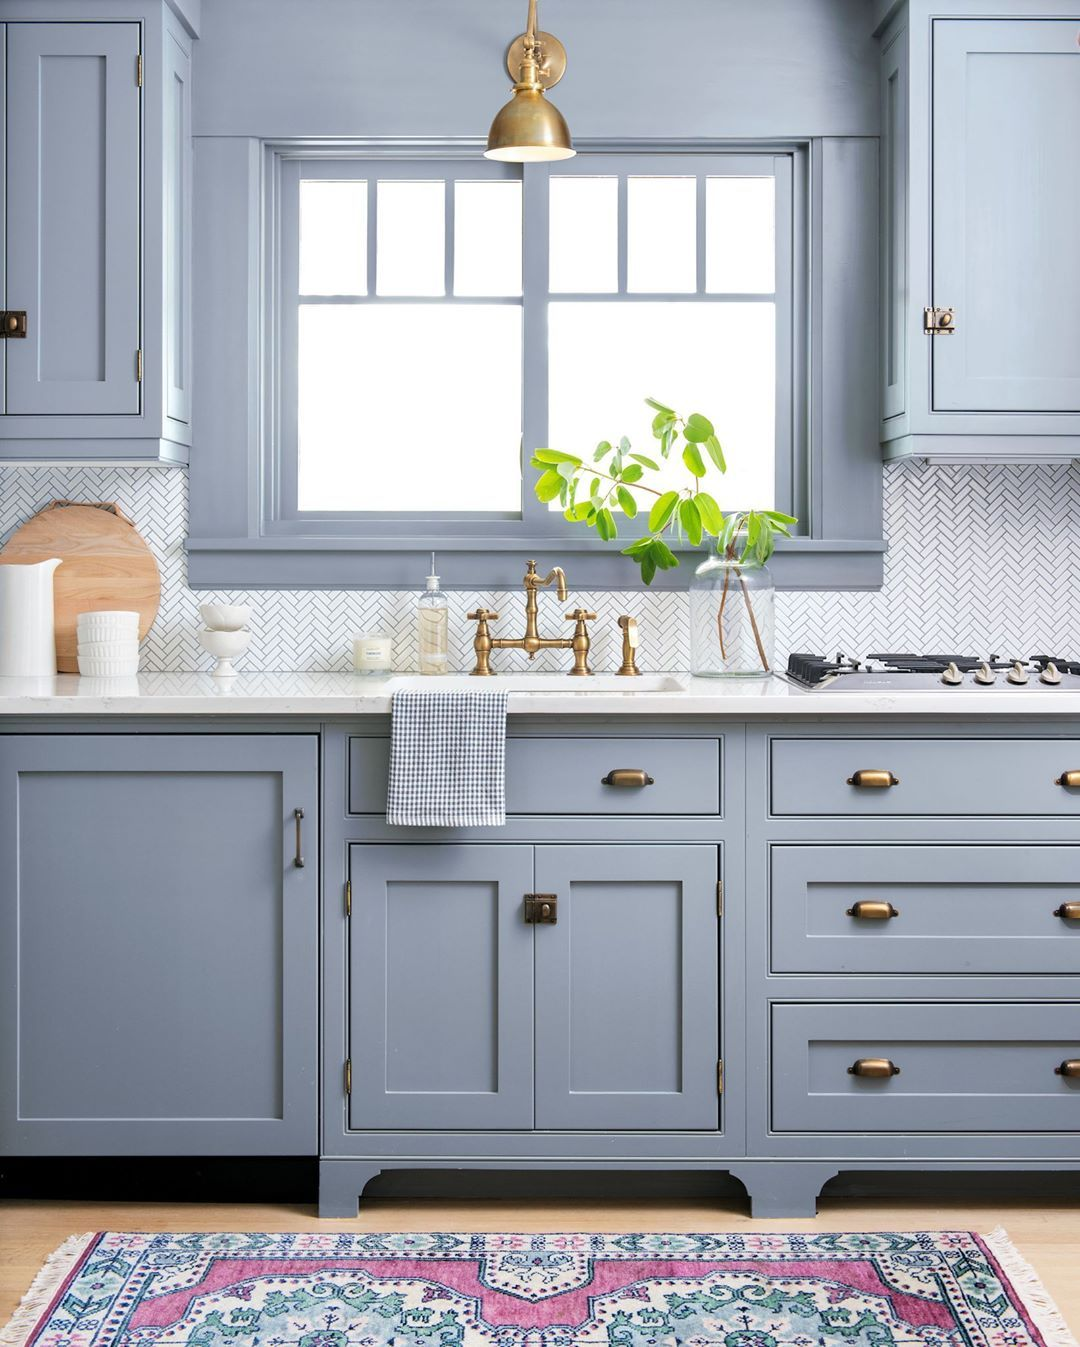 Colorful kitchen | See this Instagram photo by @caitlinwilsondesign ...